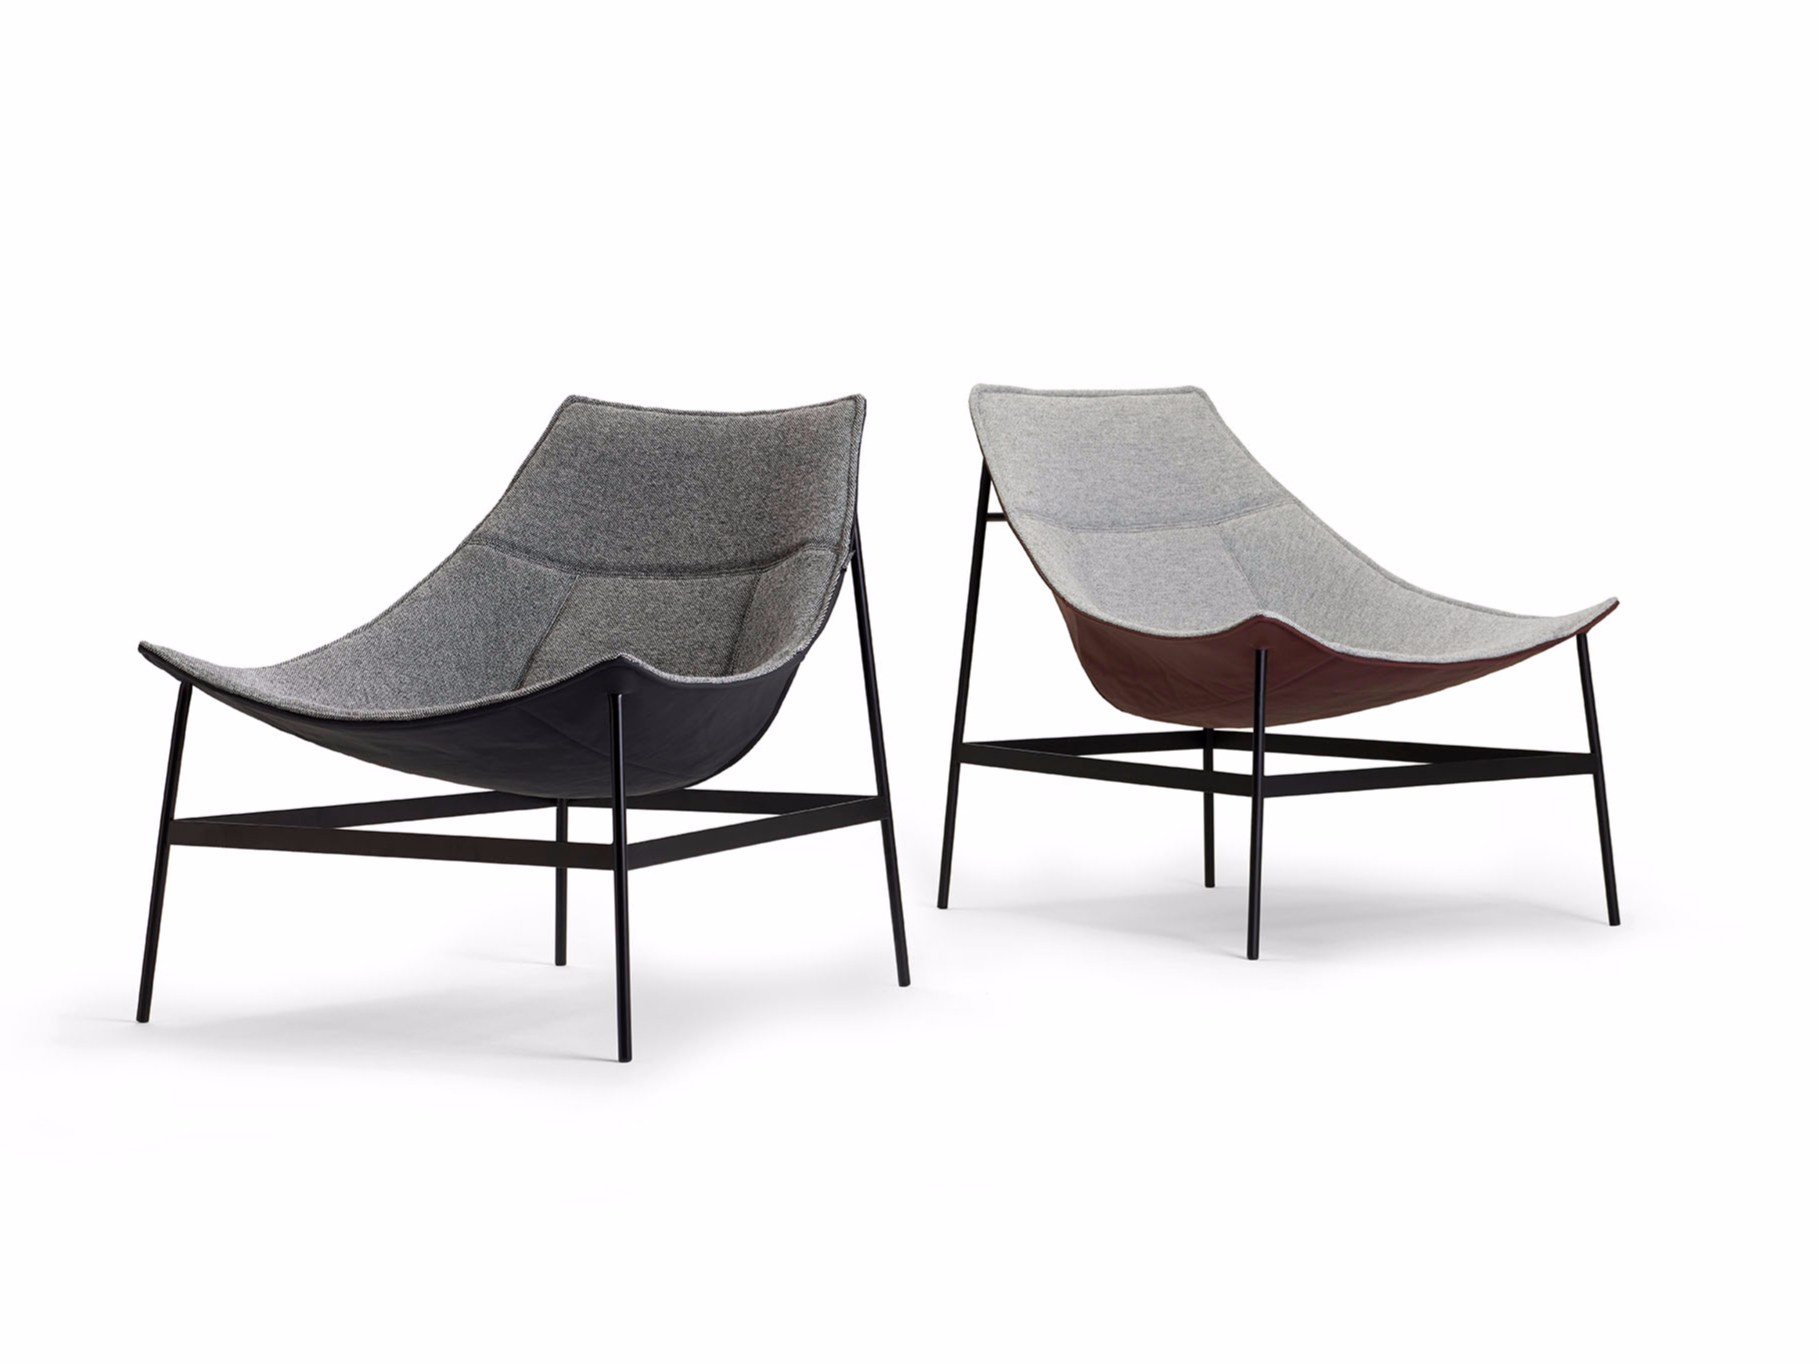 Montparnasse Lounge Chairs by Christophe Pillet for Offecct